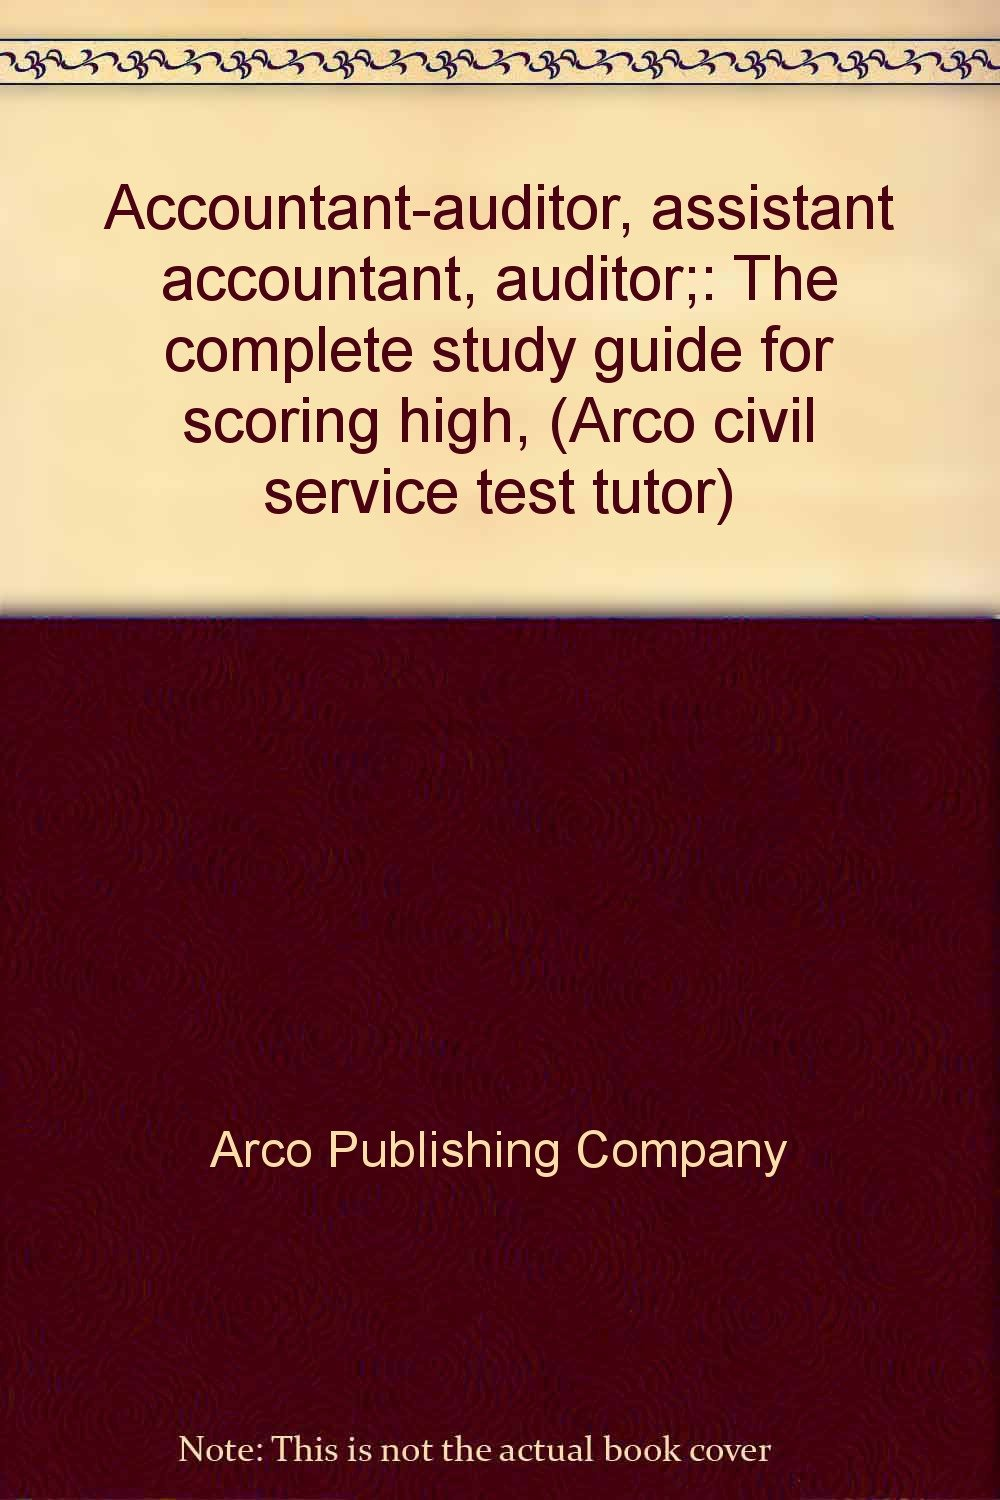 Accountant-auditor, assistant accountant, auditor;: The complete study guide  for scoring high, (Arco civil service test tutor): Arco Publishing Company:  ...